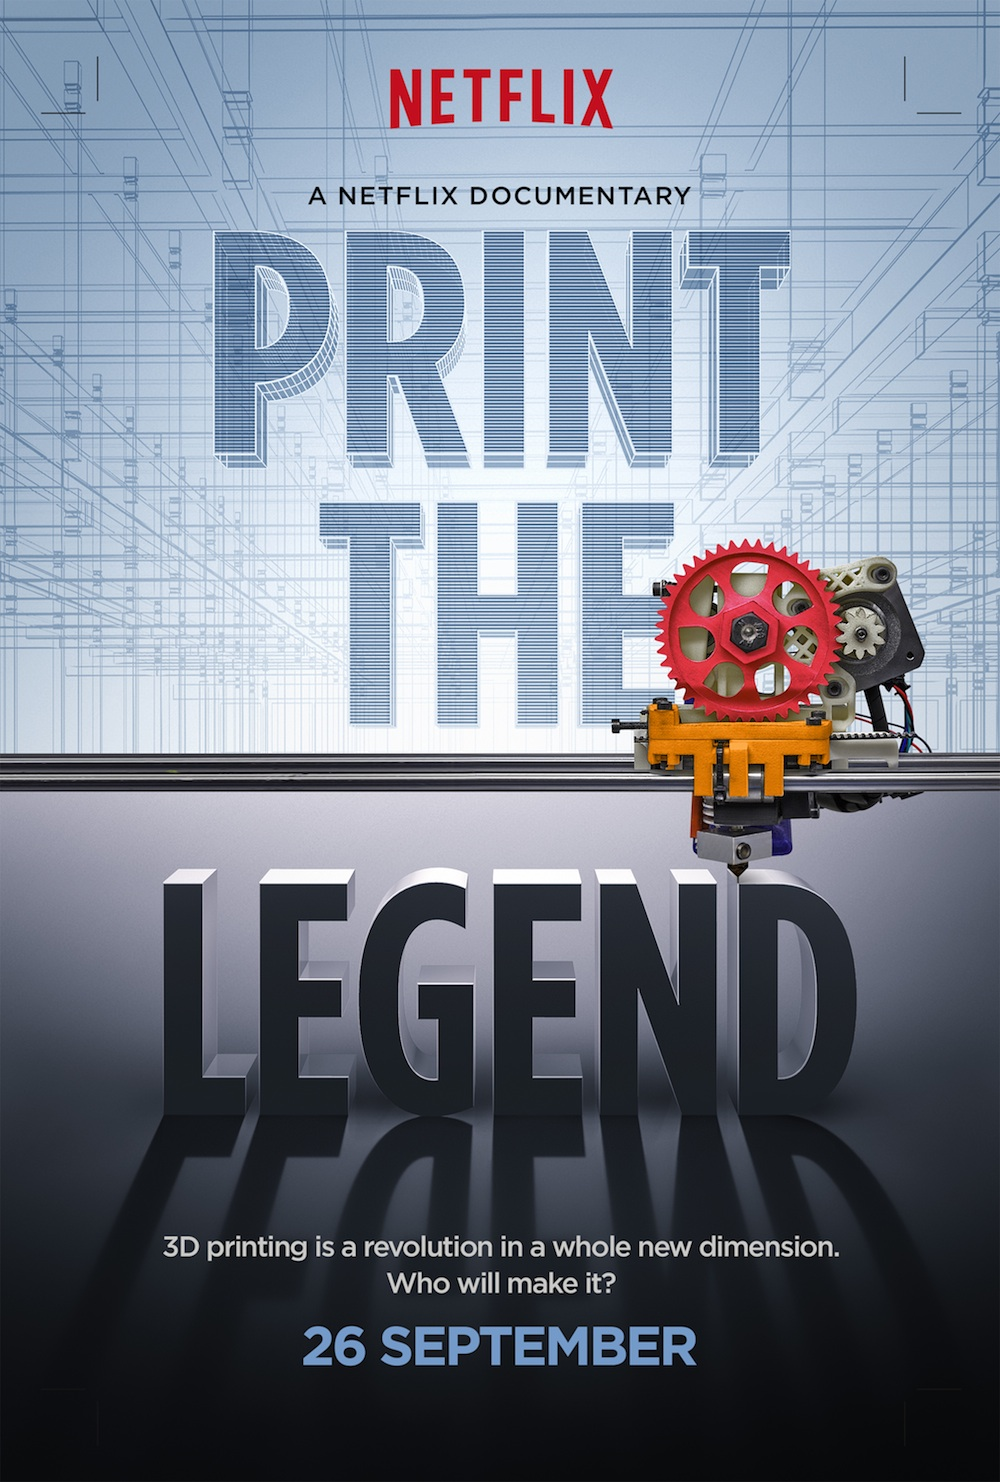 Trailer And Poster For Netflix Documentary Print The